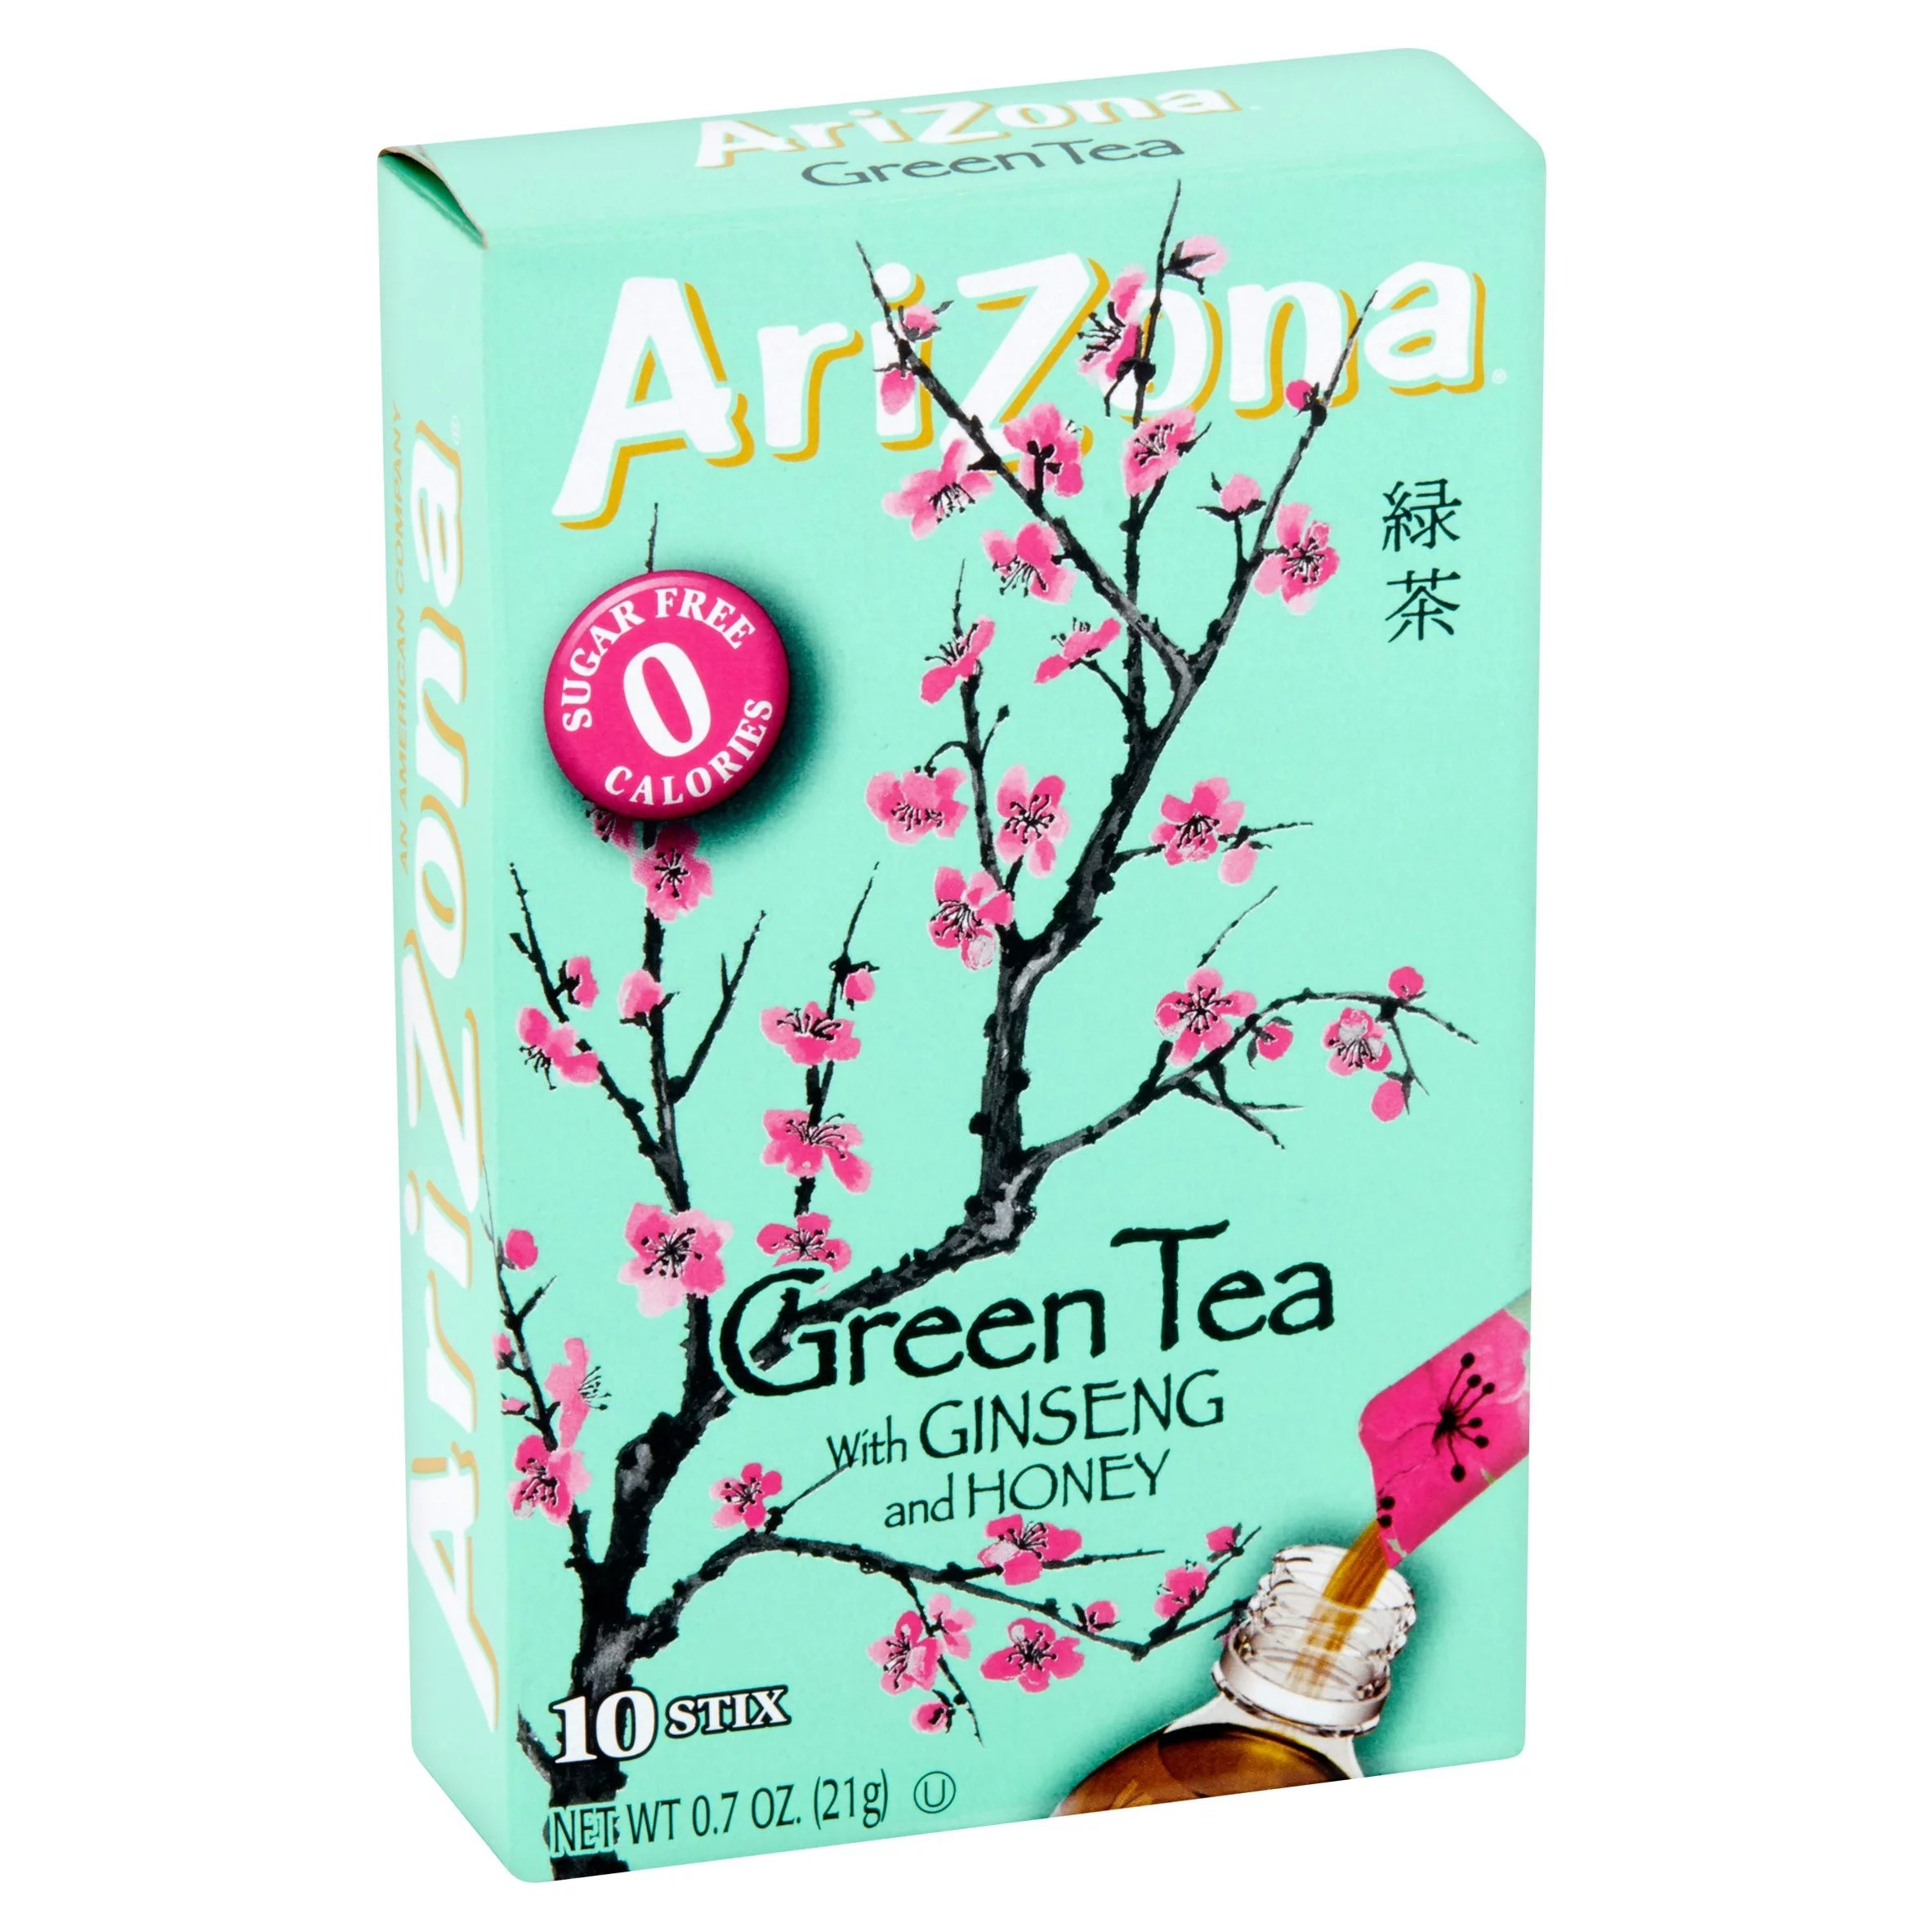 Ginseng In Deutschland Arizona Drink Mix Green Tea With Ginseng And Honey 7 Oz 10 Sticks 1 Count